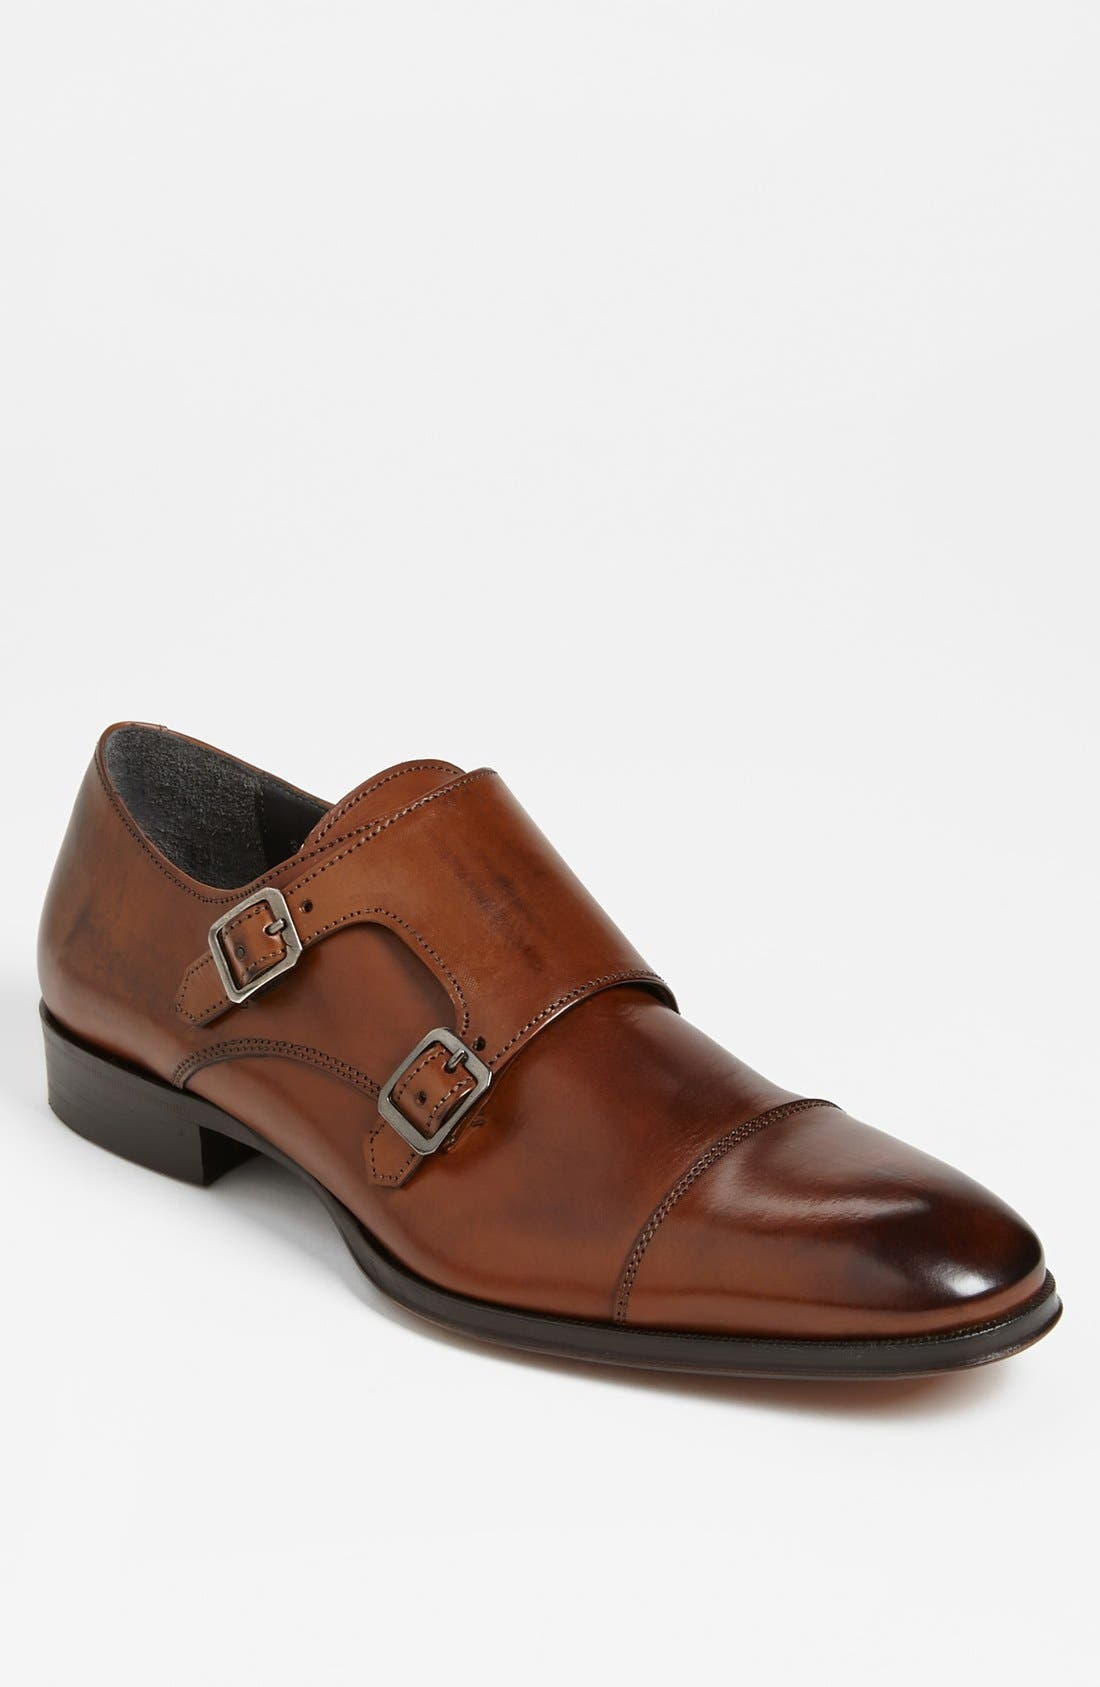 Main Image - To Boot New York 'Langley' Double Monk Strap Slip-On (Online Only)